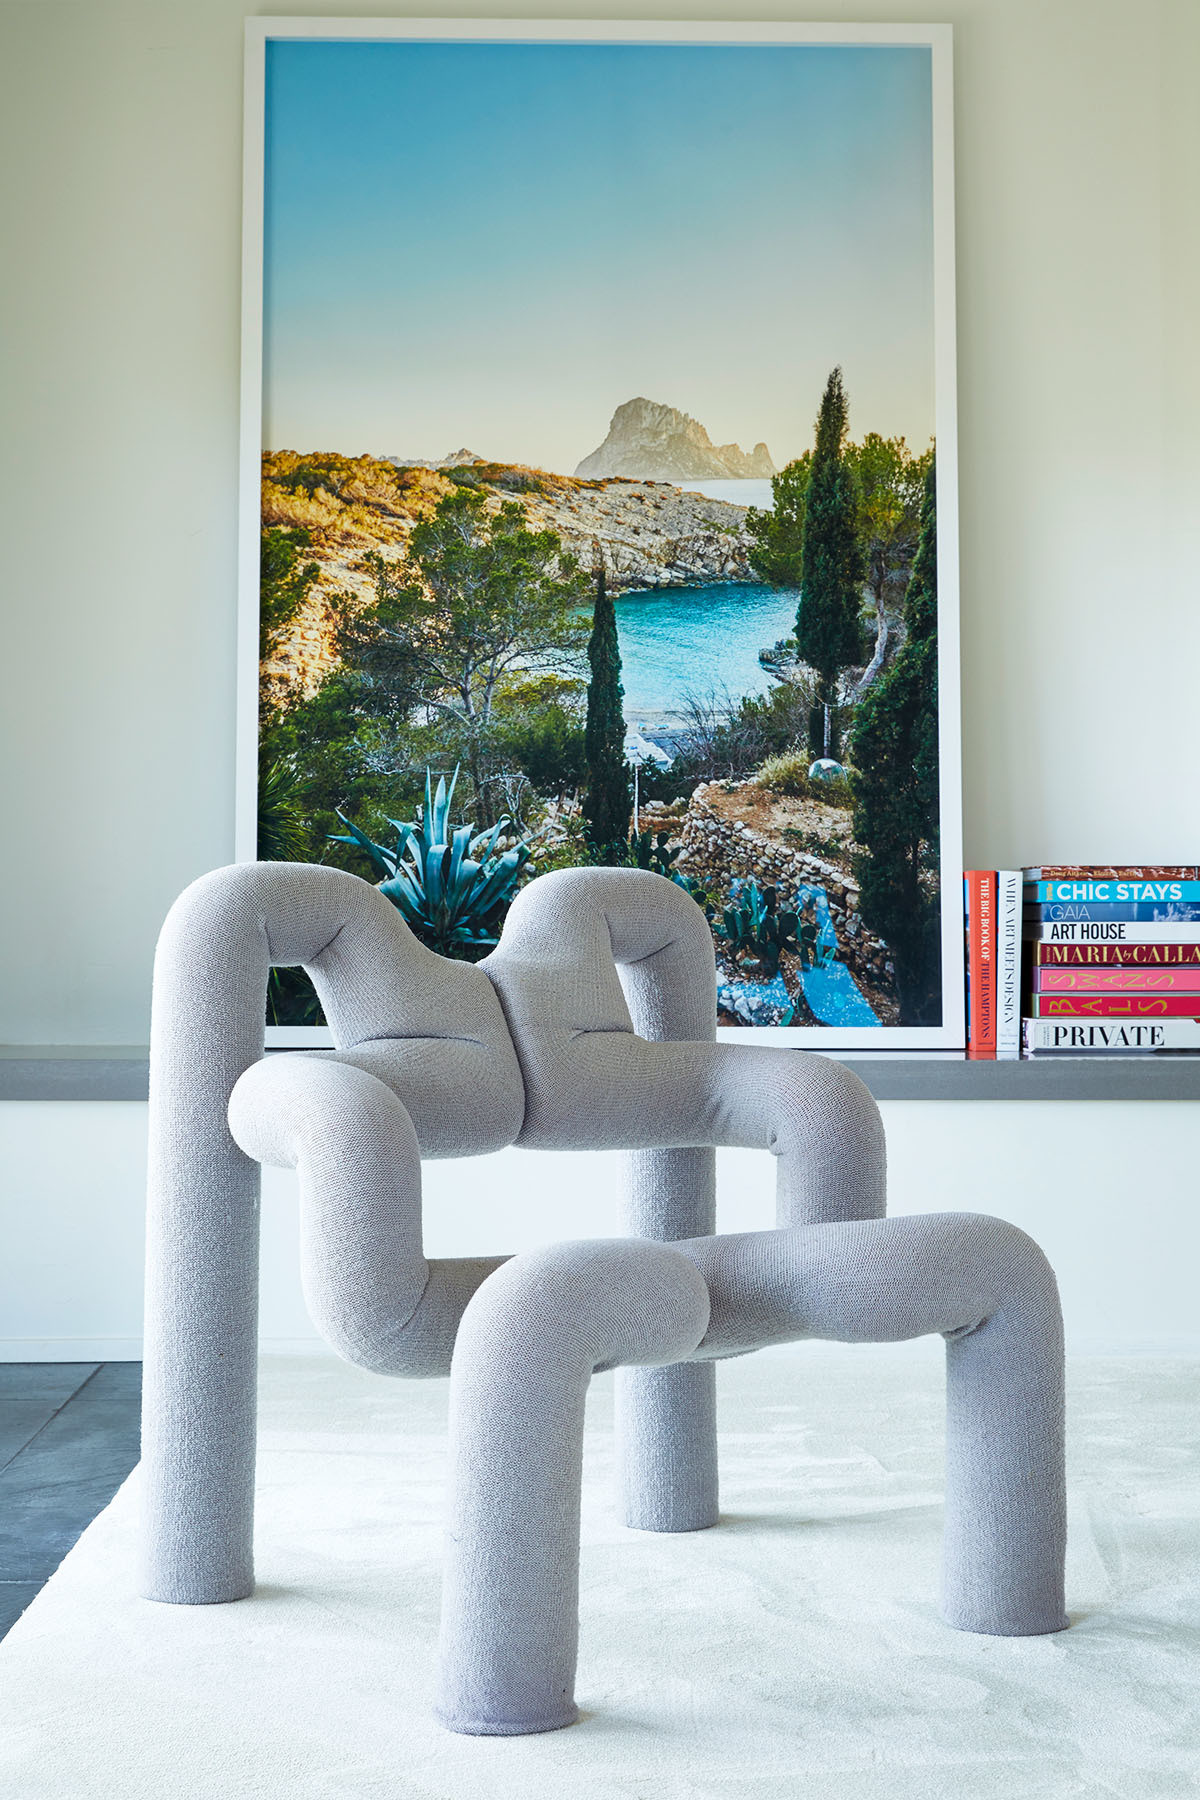 """The Terje Ekstrom ""Ekstrem"" Chairs are my favorite — and most costly purchase,"" says the designer. Stark Carpet 